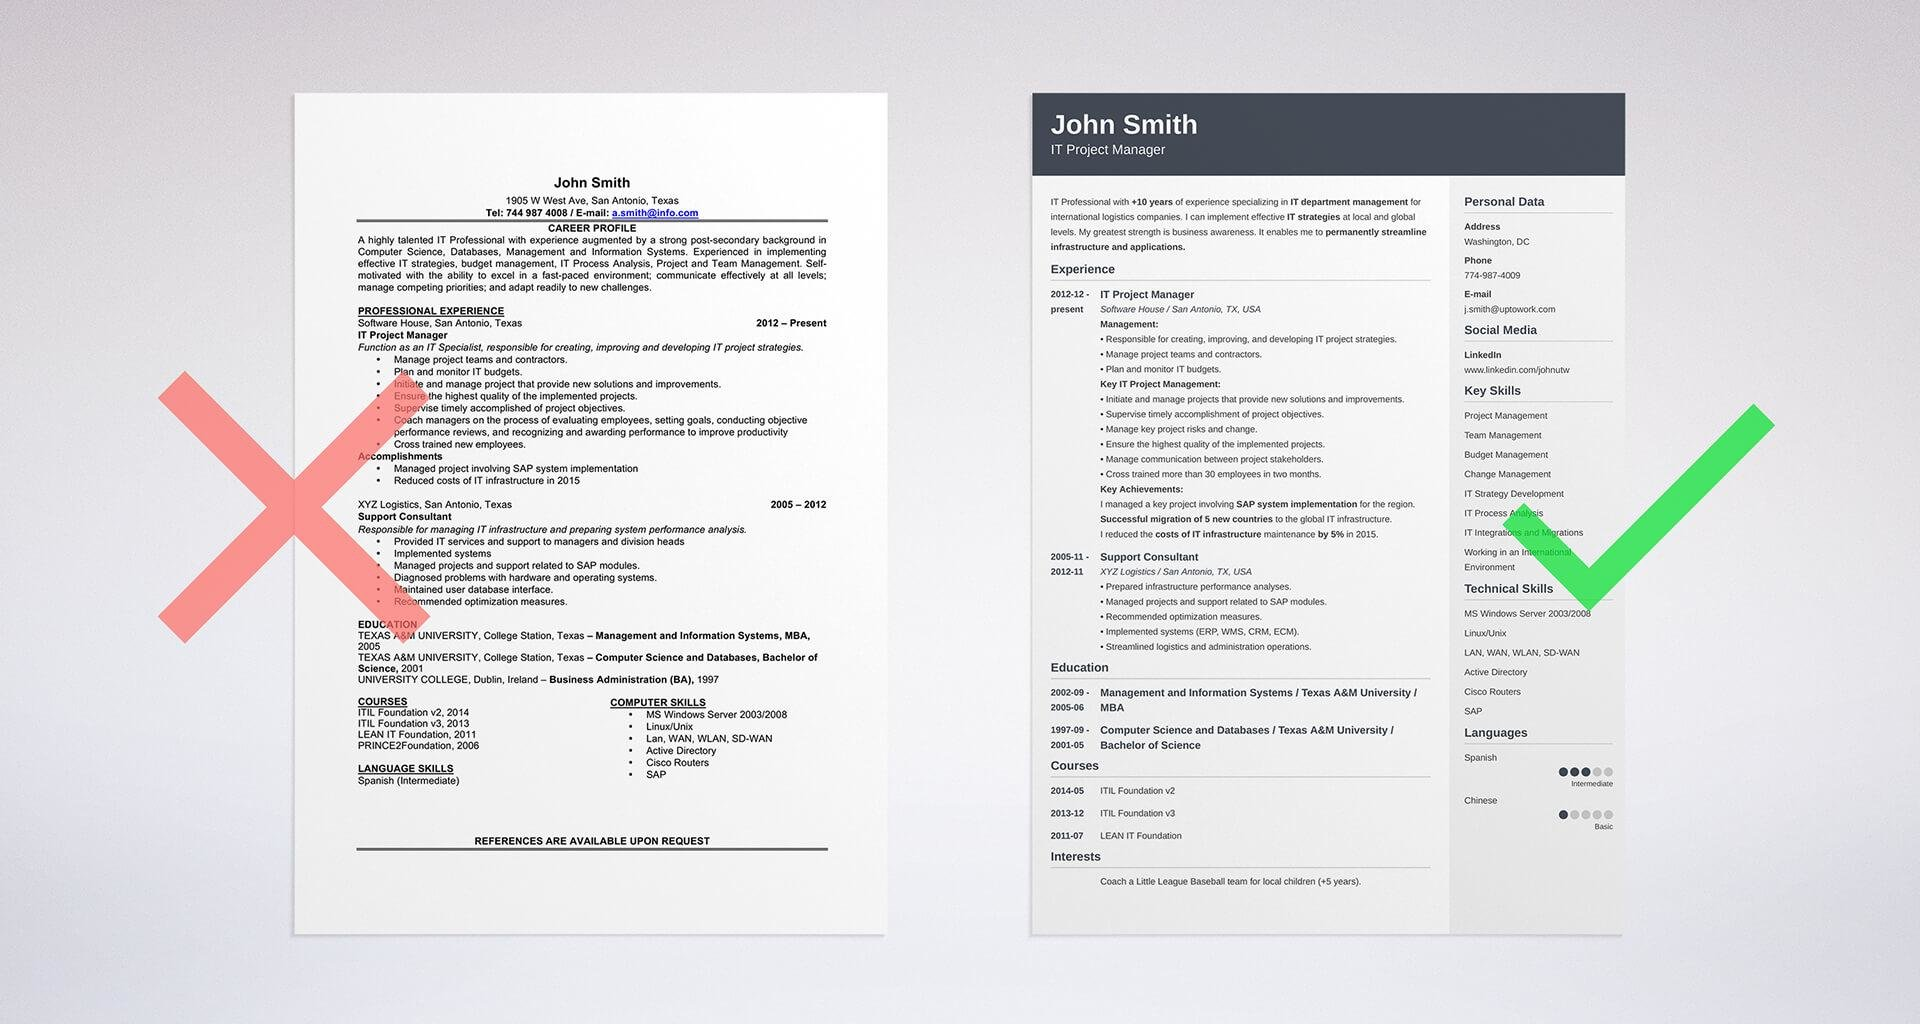 Magnificent 1 Page Resume Format Download Tiny 1 Page Resume Or 2 Solid 1 Year Experience Java Resume Format 11x17 Graph Paper Template Old 15 Year Old Funny Resume White15 Year Old Student Resume Word Vs PDF Resume: What Is The Best Resume Format?